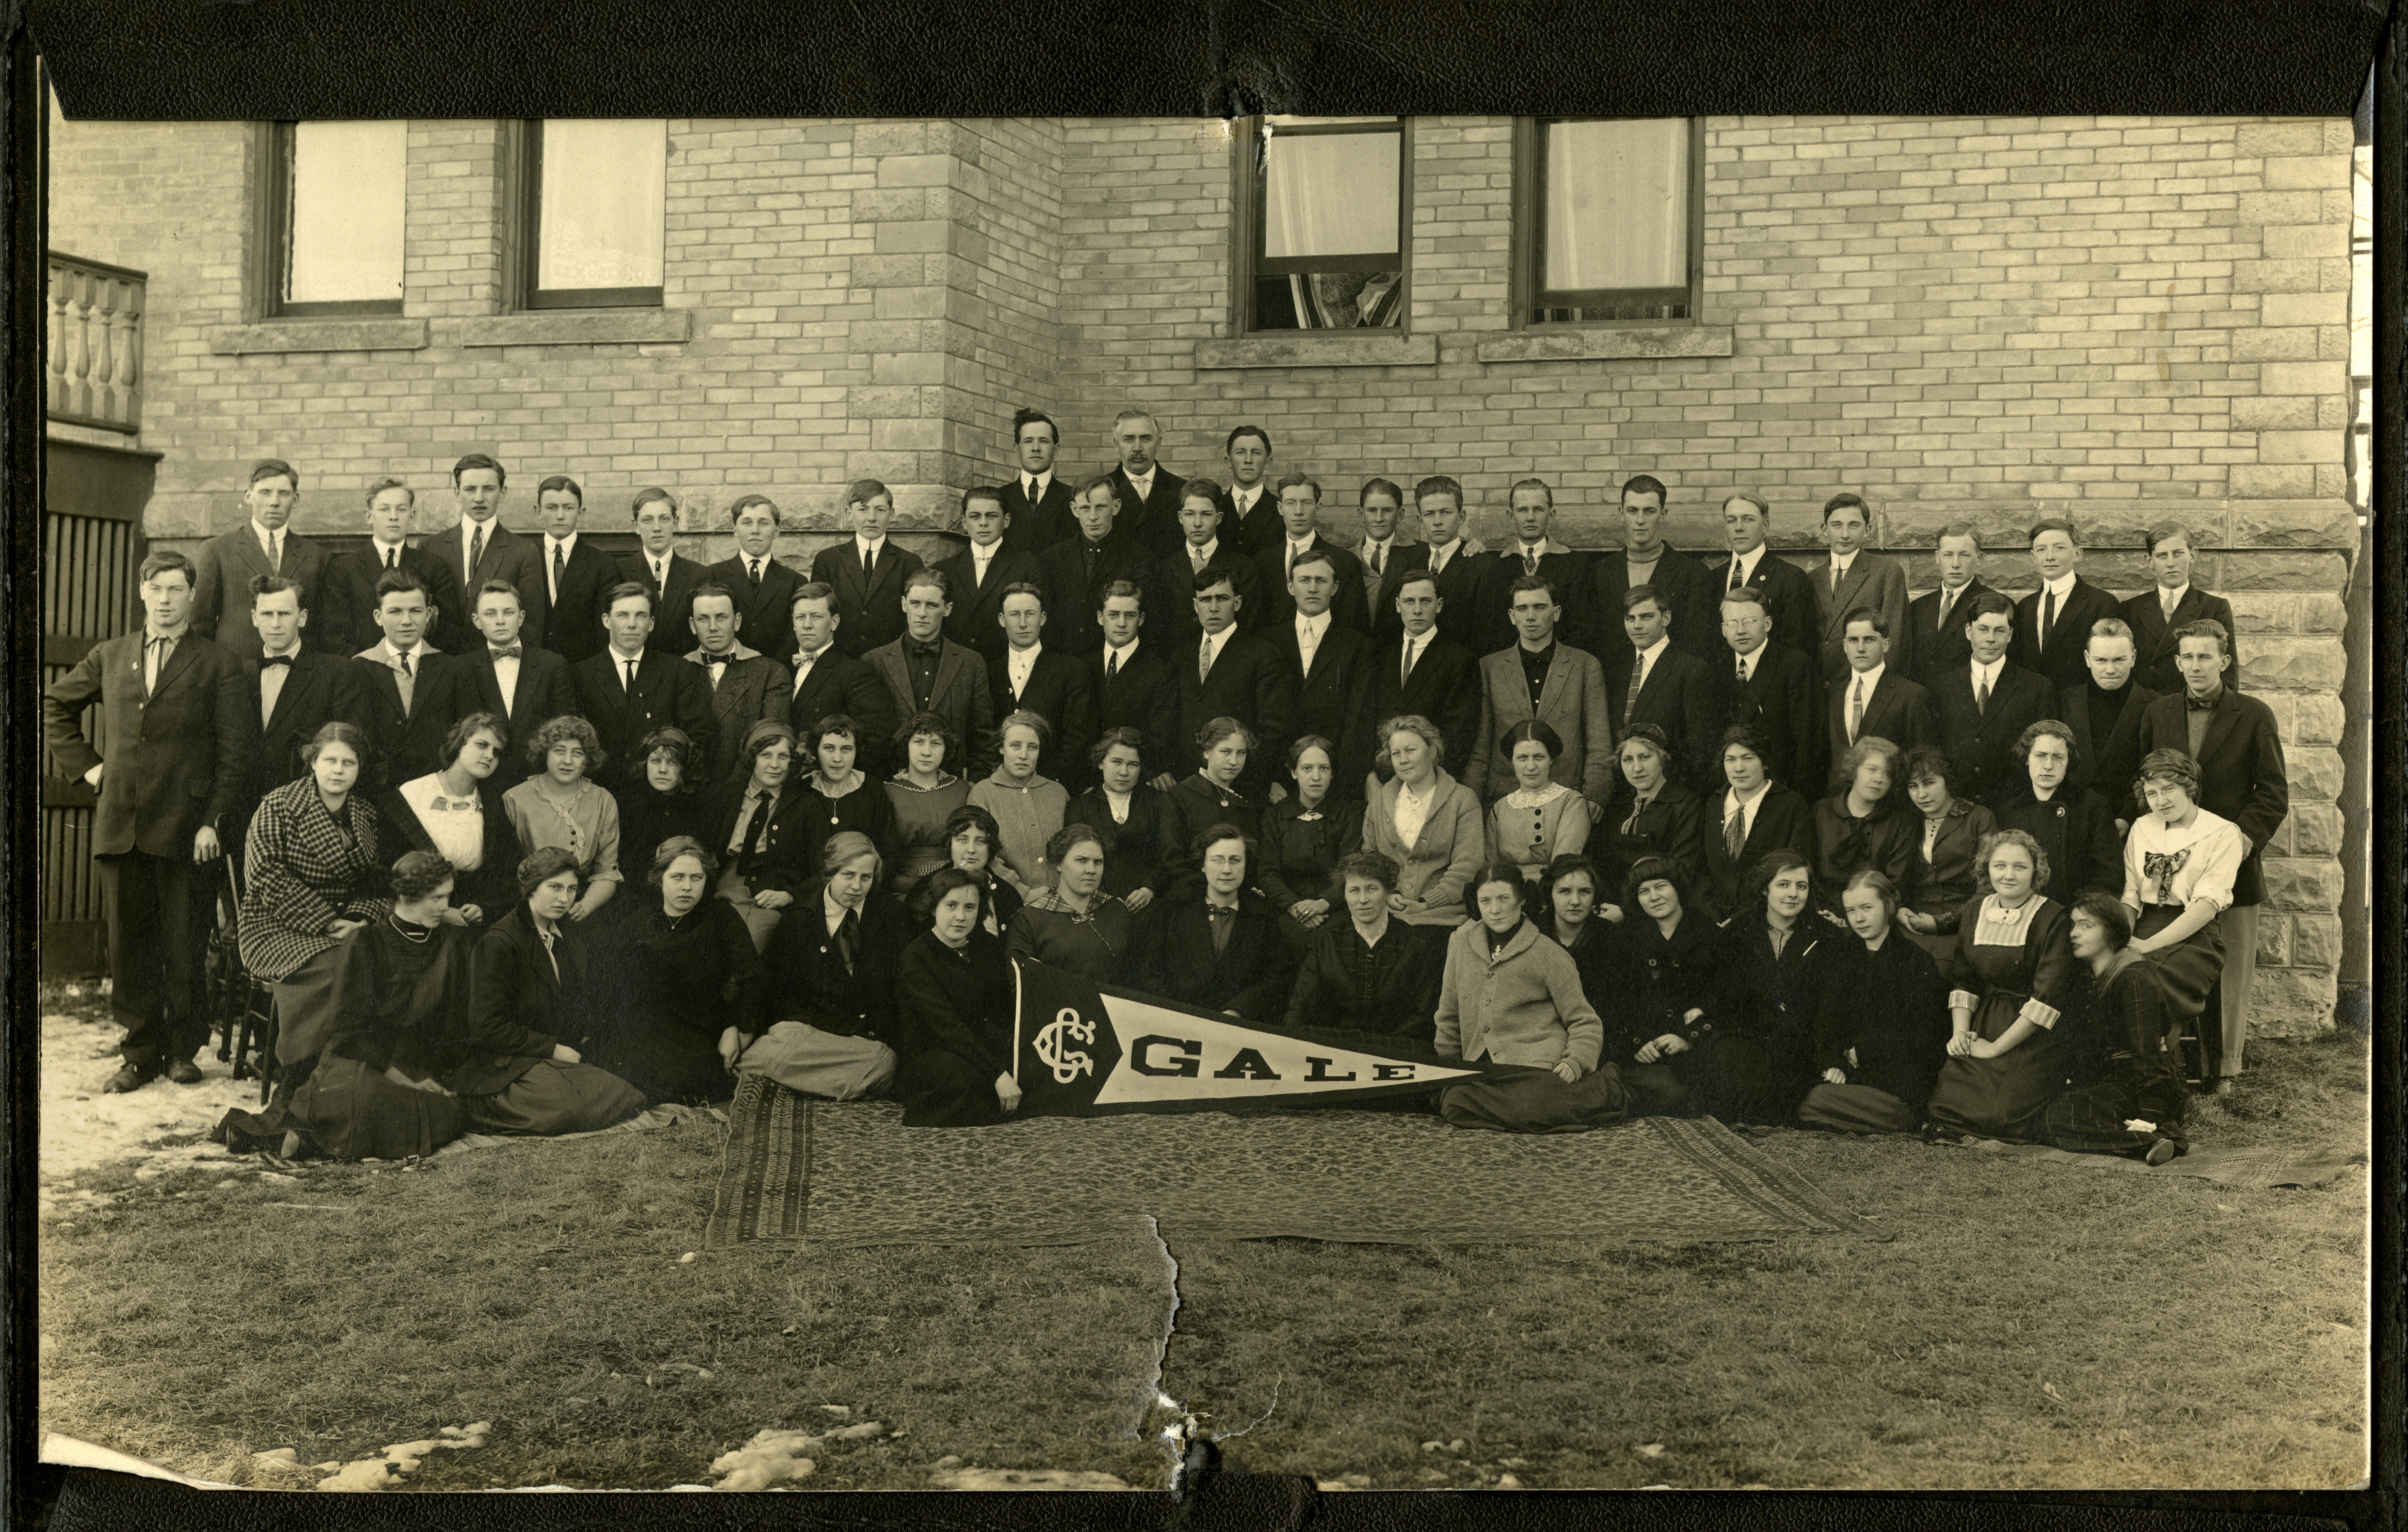 Group photo of students at Gale College